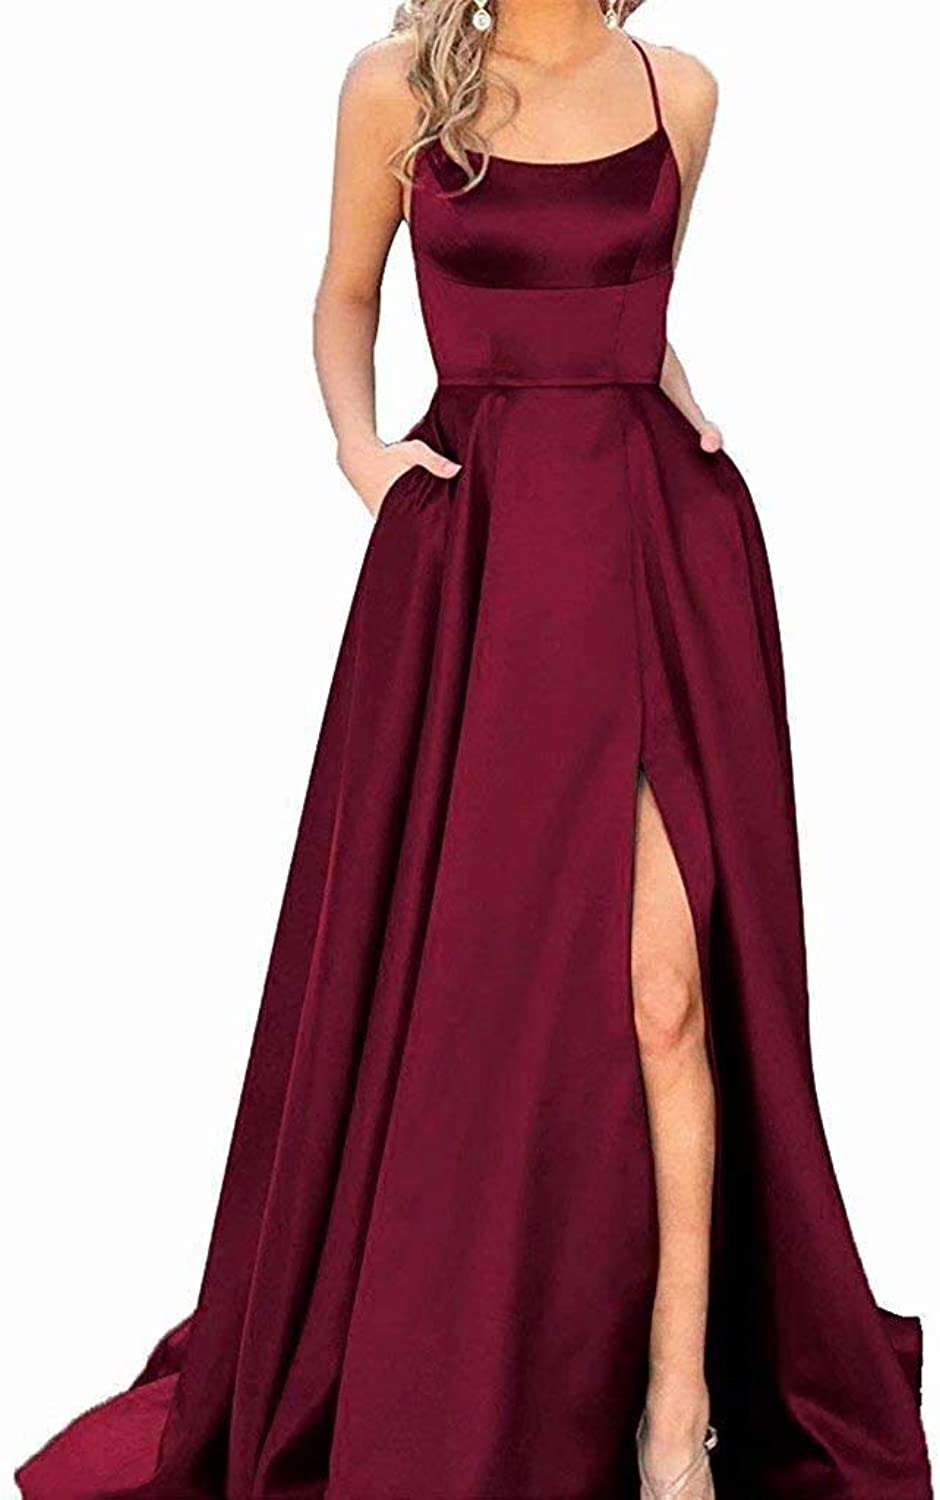 Alicebridal Women's Spaghetti Straps Prom Dresses Long 2019 Satin Backless Formal Evening Gowns with Pockets